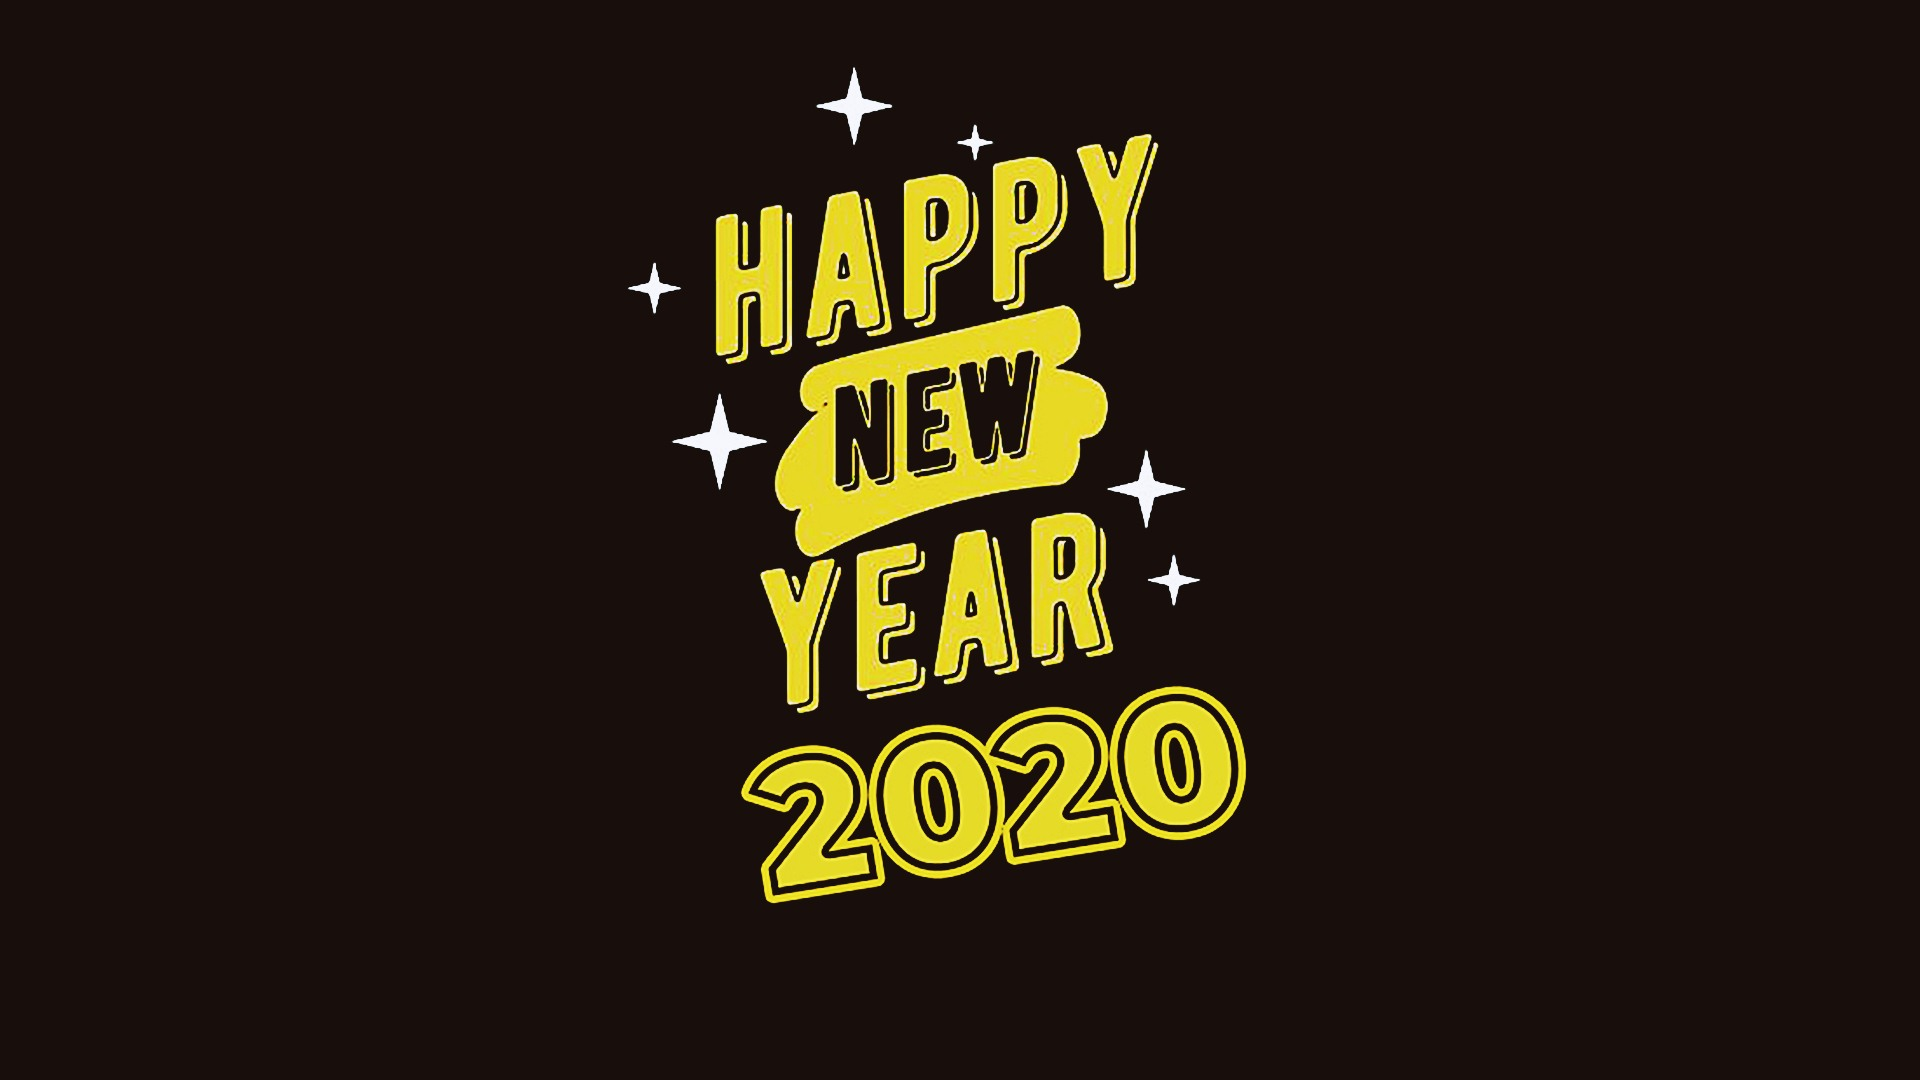 download Happy New Year 2020 Wallpapers Full HD 45556 Baltana 1920x1080